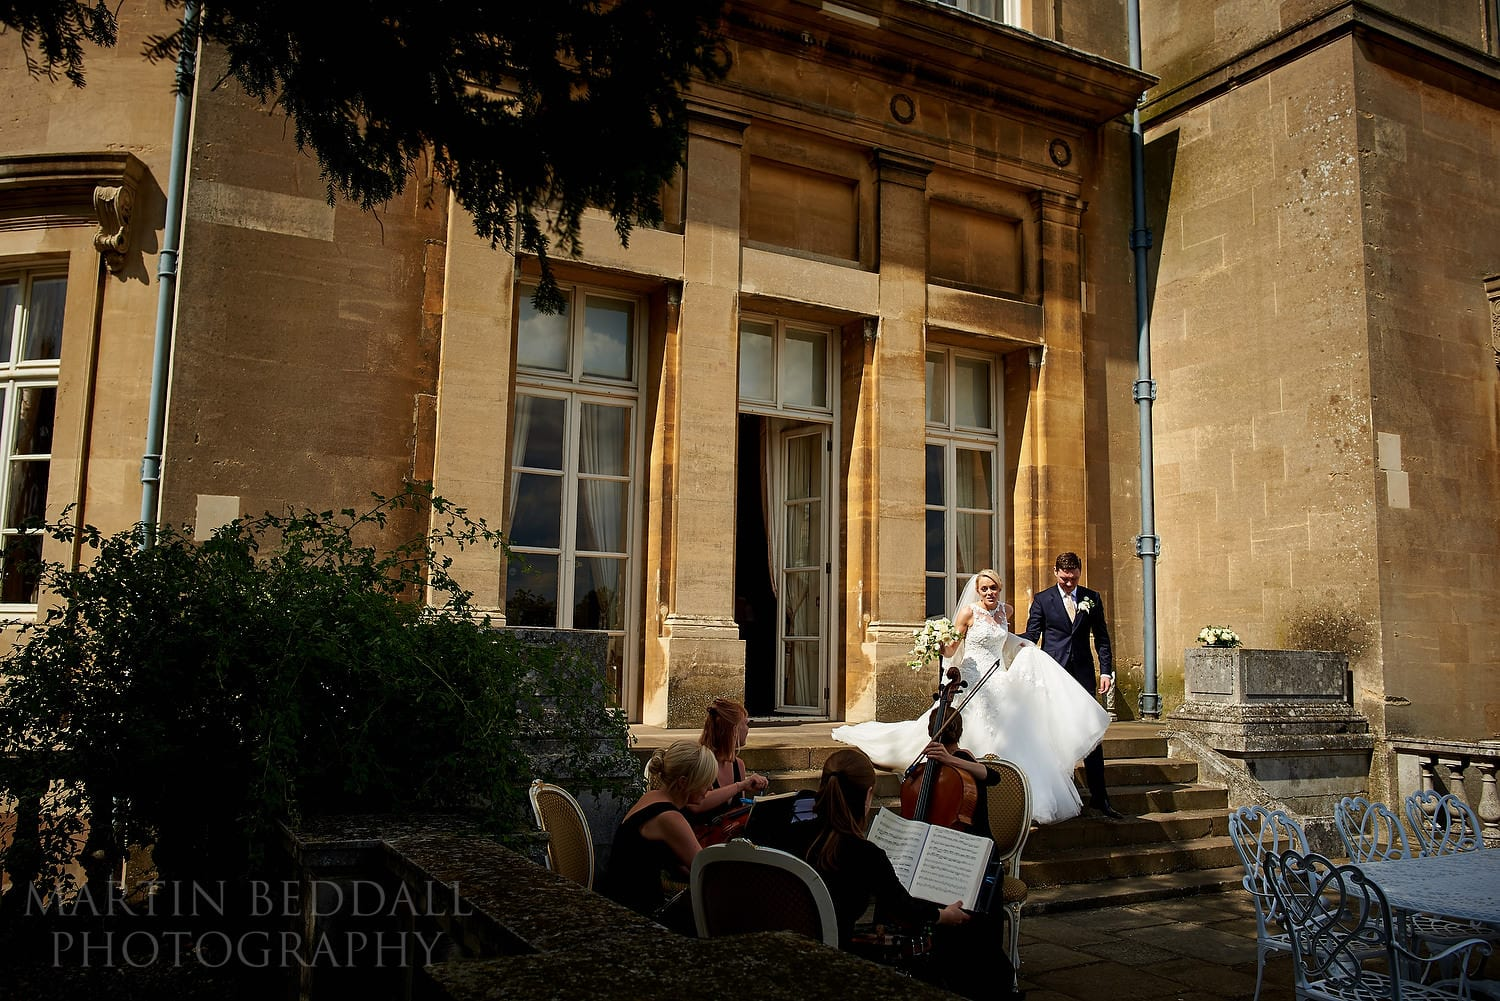 Bride and groom walk out into the gardens at luton Hoo